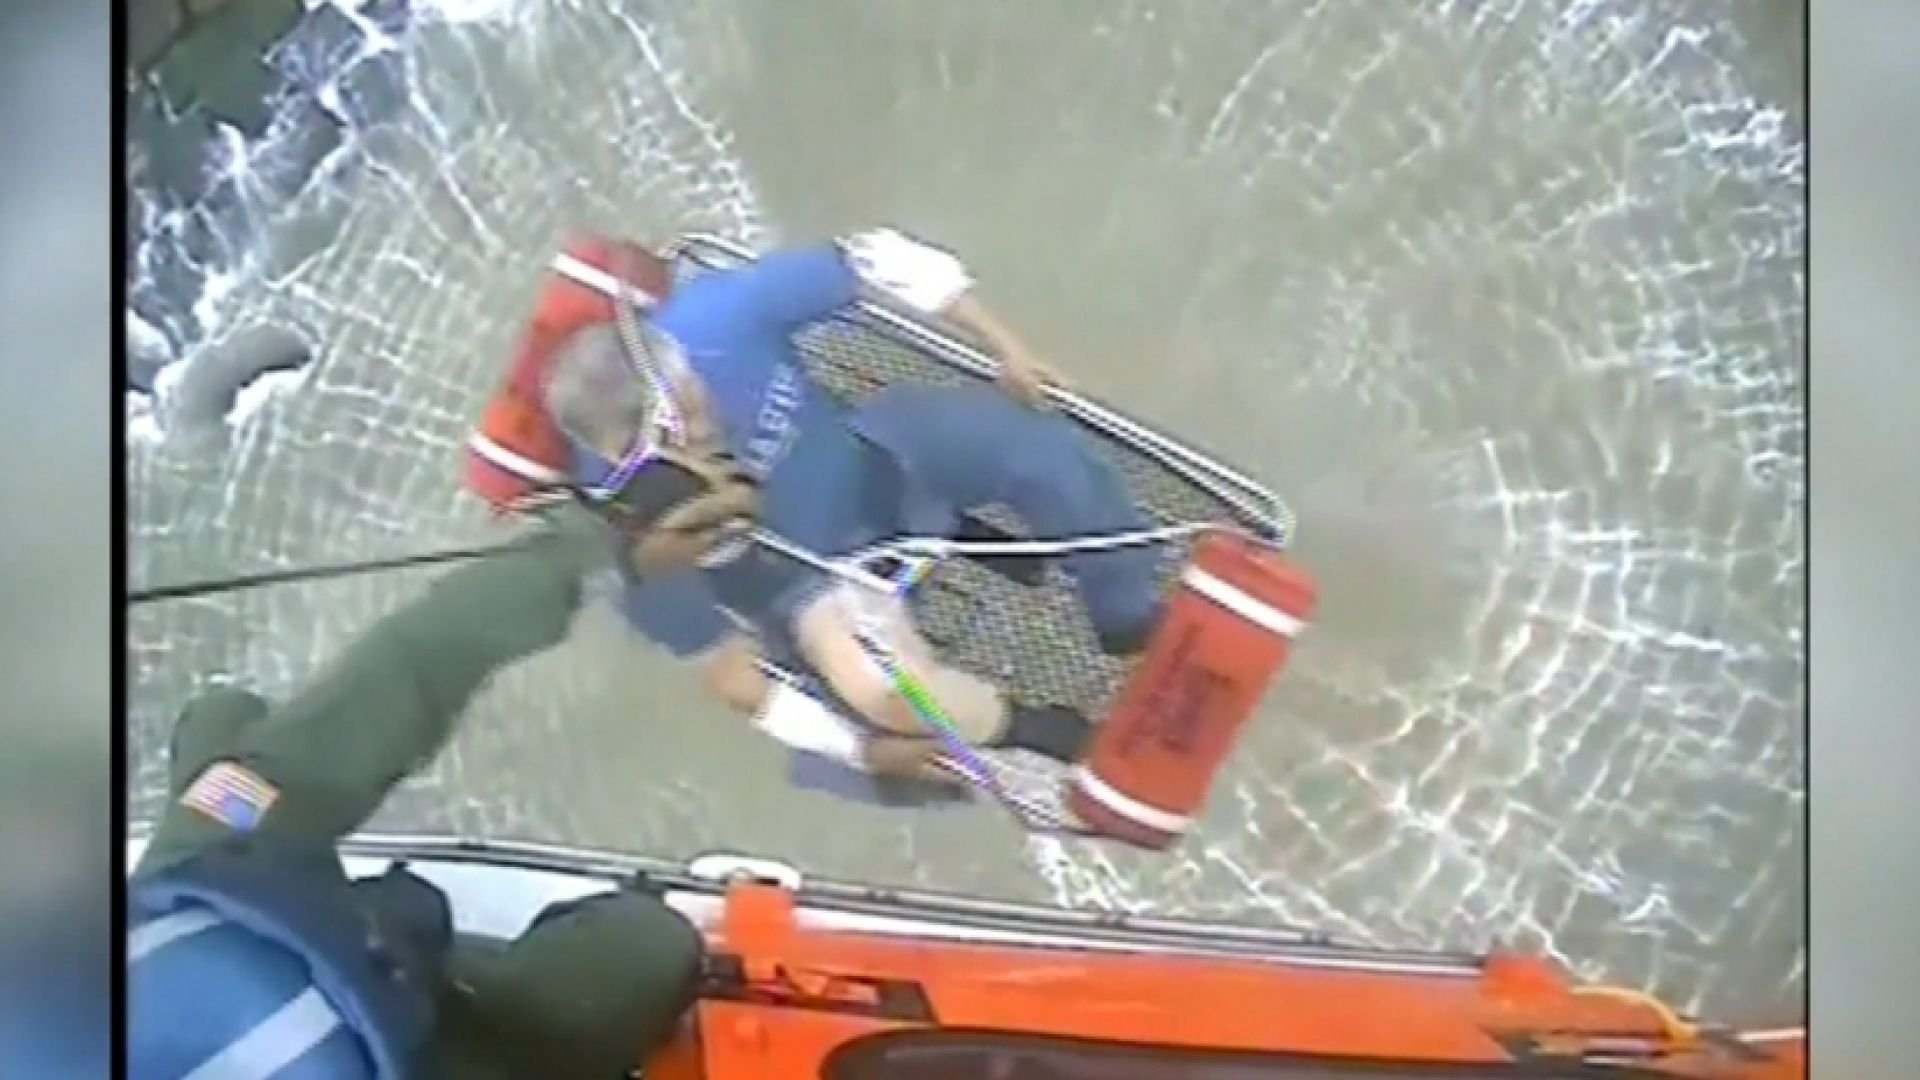 Coast Guard crews in Corpus Christi, Texas rescue 8 after boat overturns in Gulf of Mexico. (KRIS)